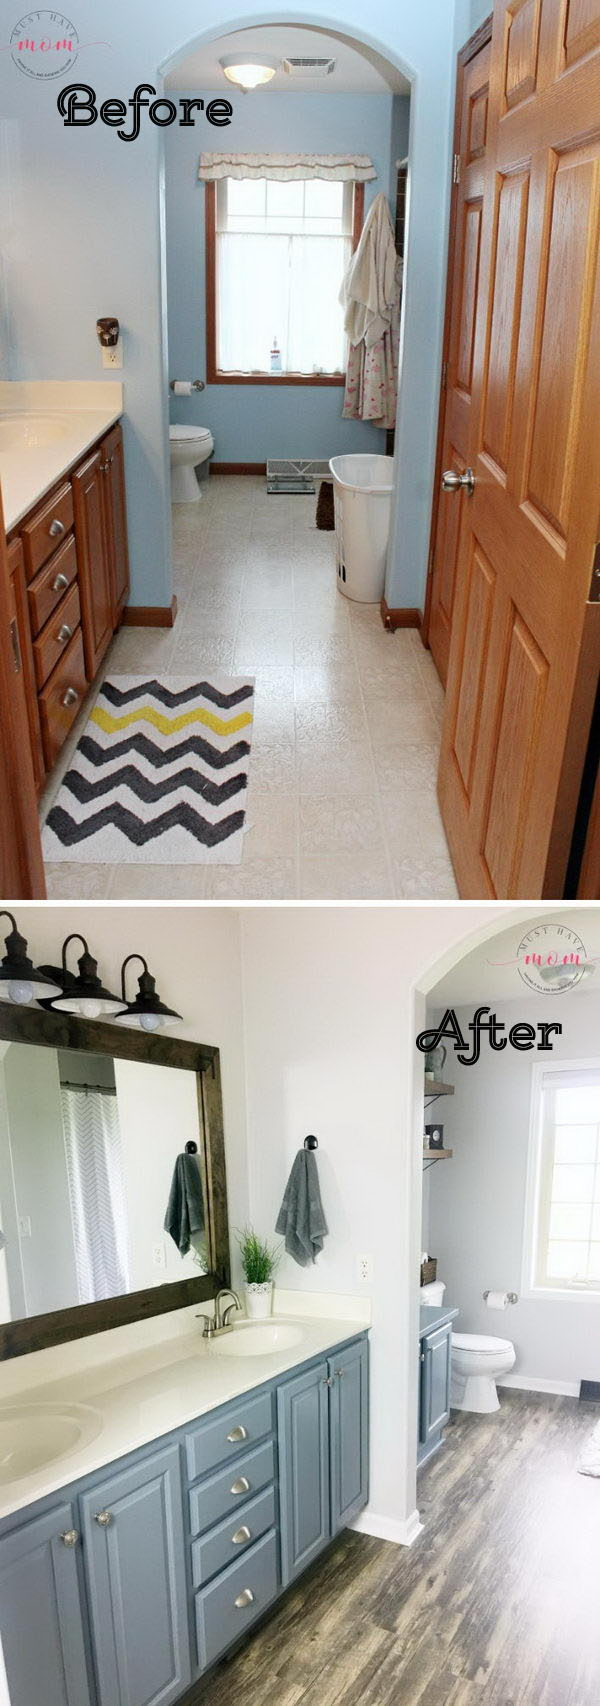 Terrific 50 Gorgeous Bathroom Makeovers With Before And After Photos Best Image Libraries Thycampuscom